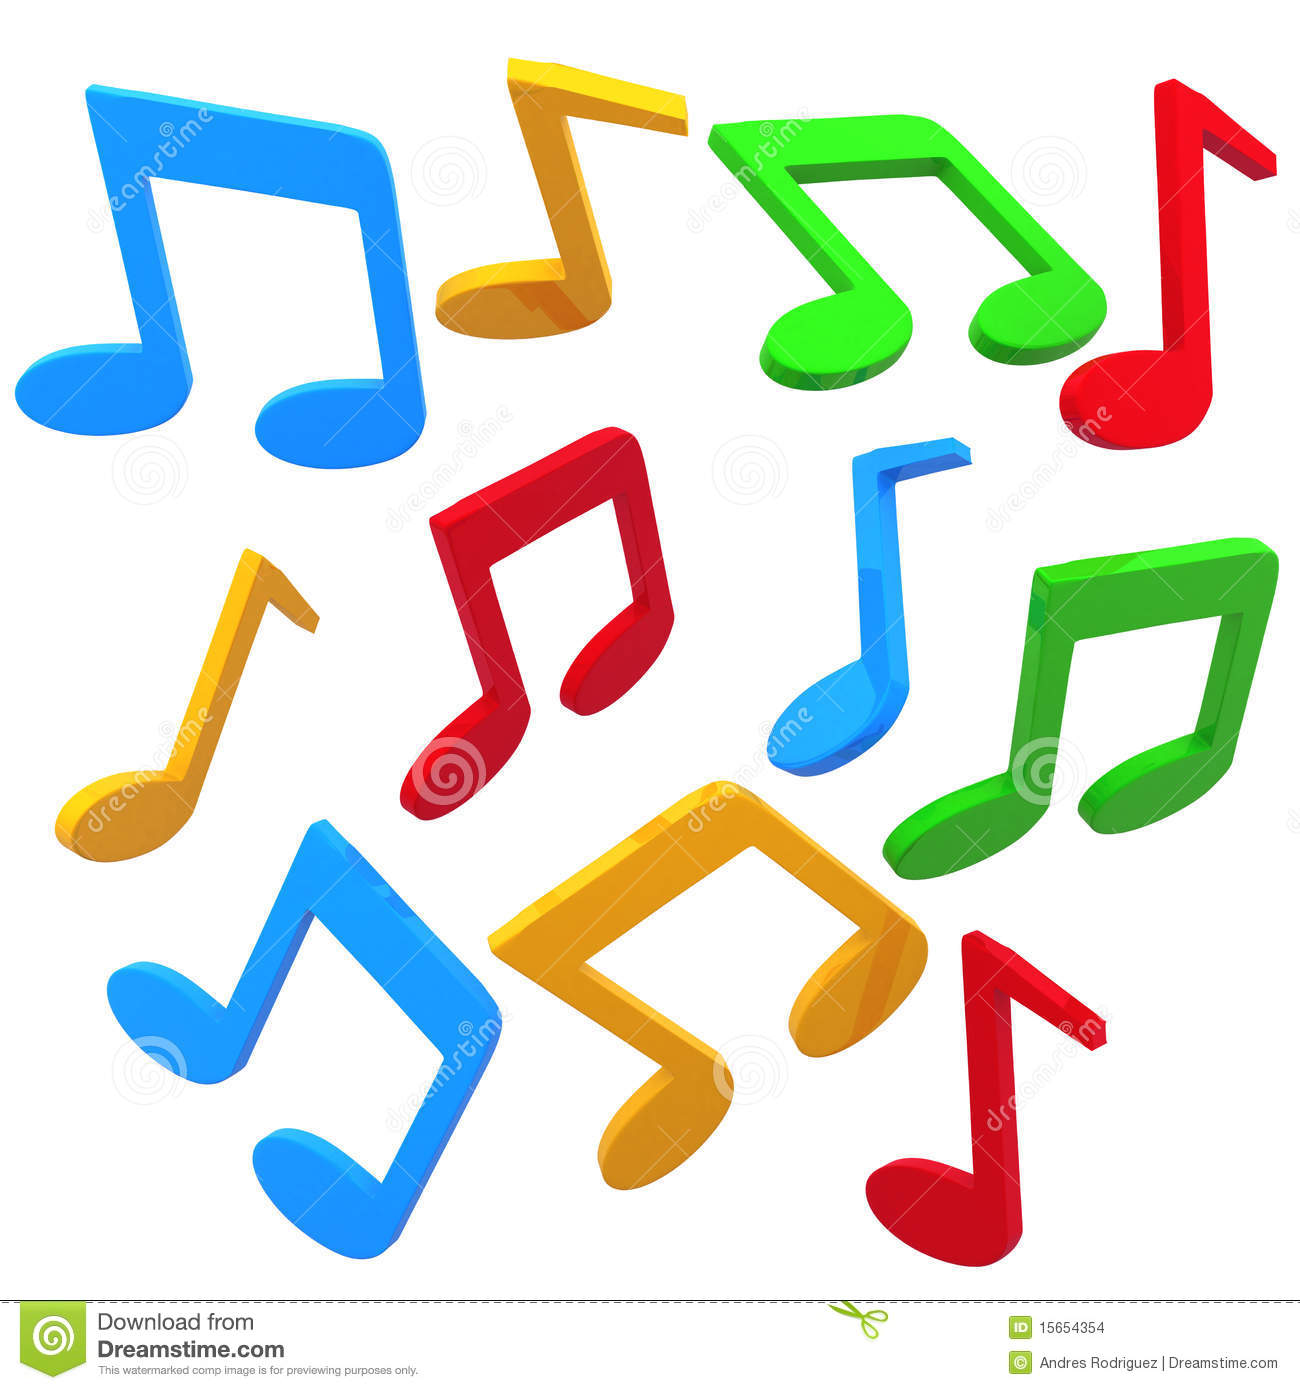 Colorful music notes isolated over a white background